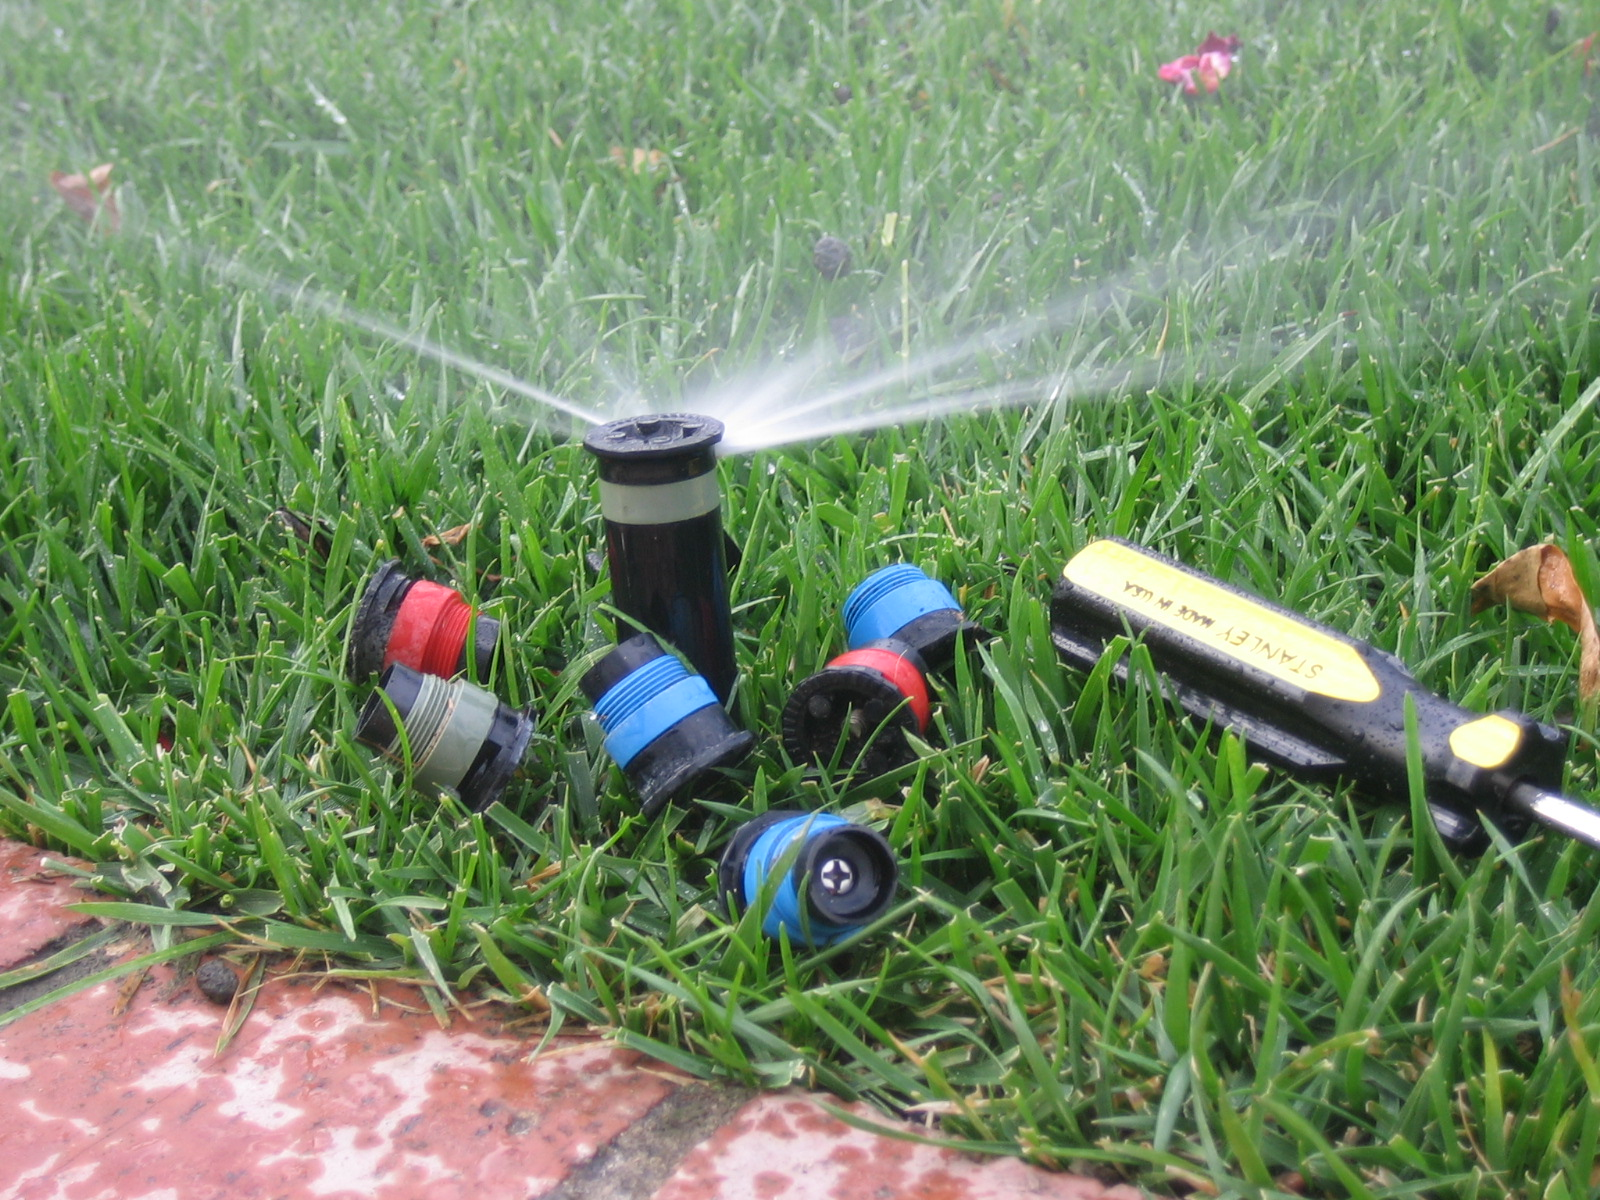 Sprinkler System Repair Service : Sprinkler system maintenance irrigation